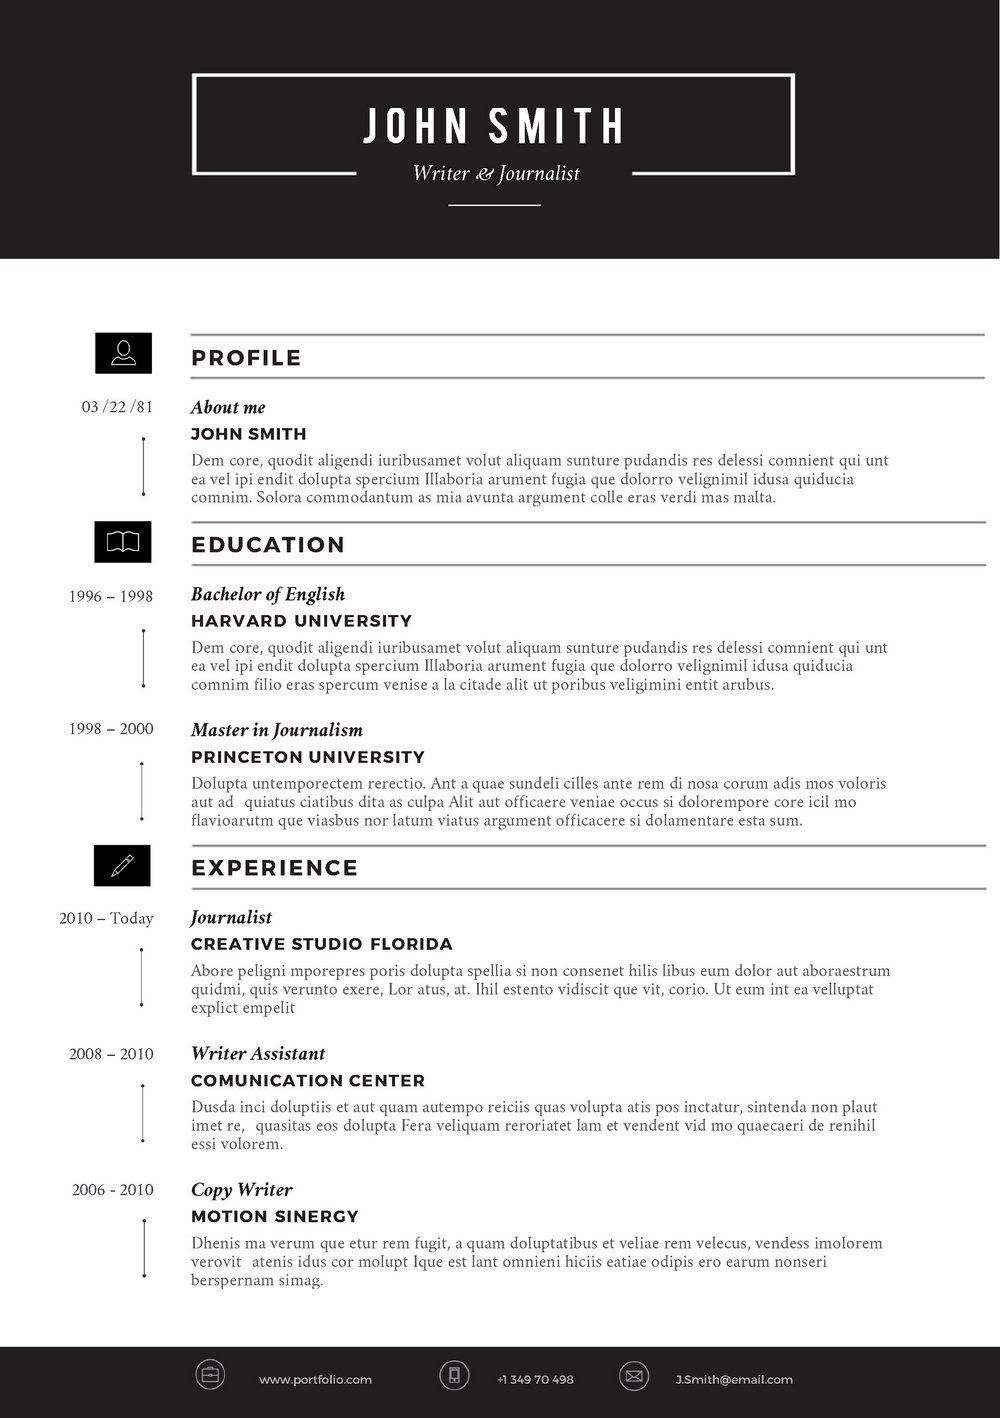 Free Psd Resume & Cover Letter Template Premium Ms Word Format